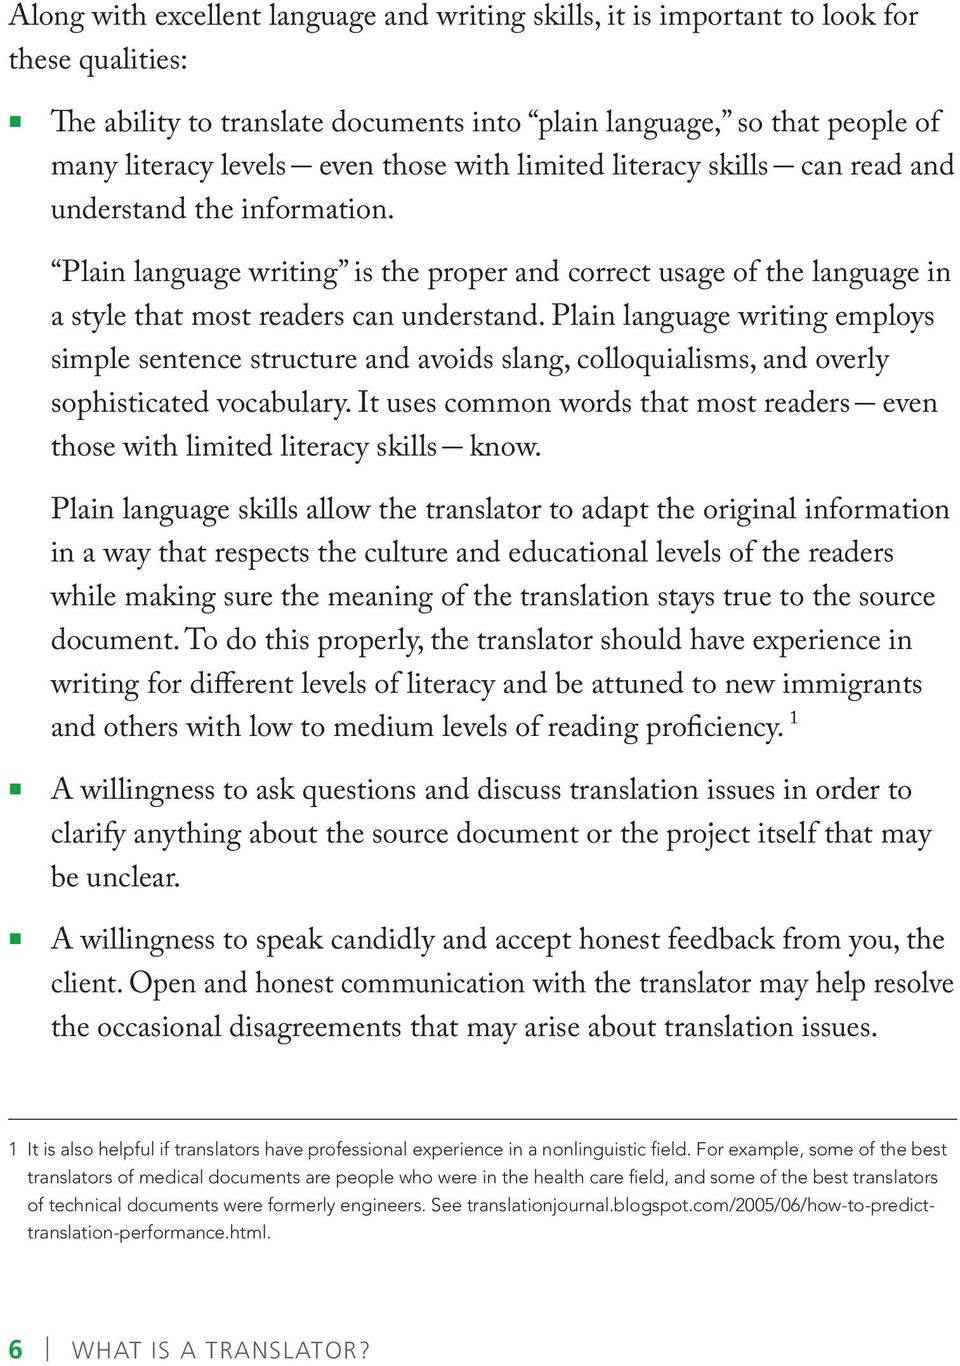 Plain language writing employs simple sentence structure and avoids slang, colloquialisms, and overly sophisticated vocabulary.